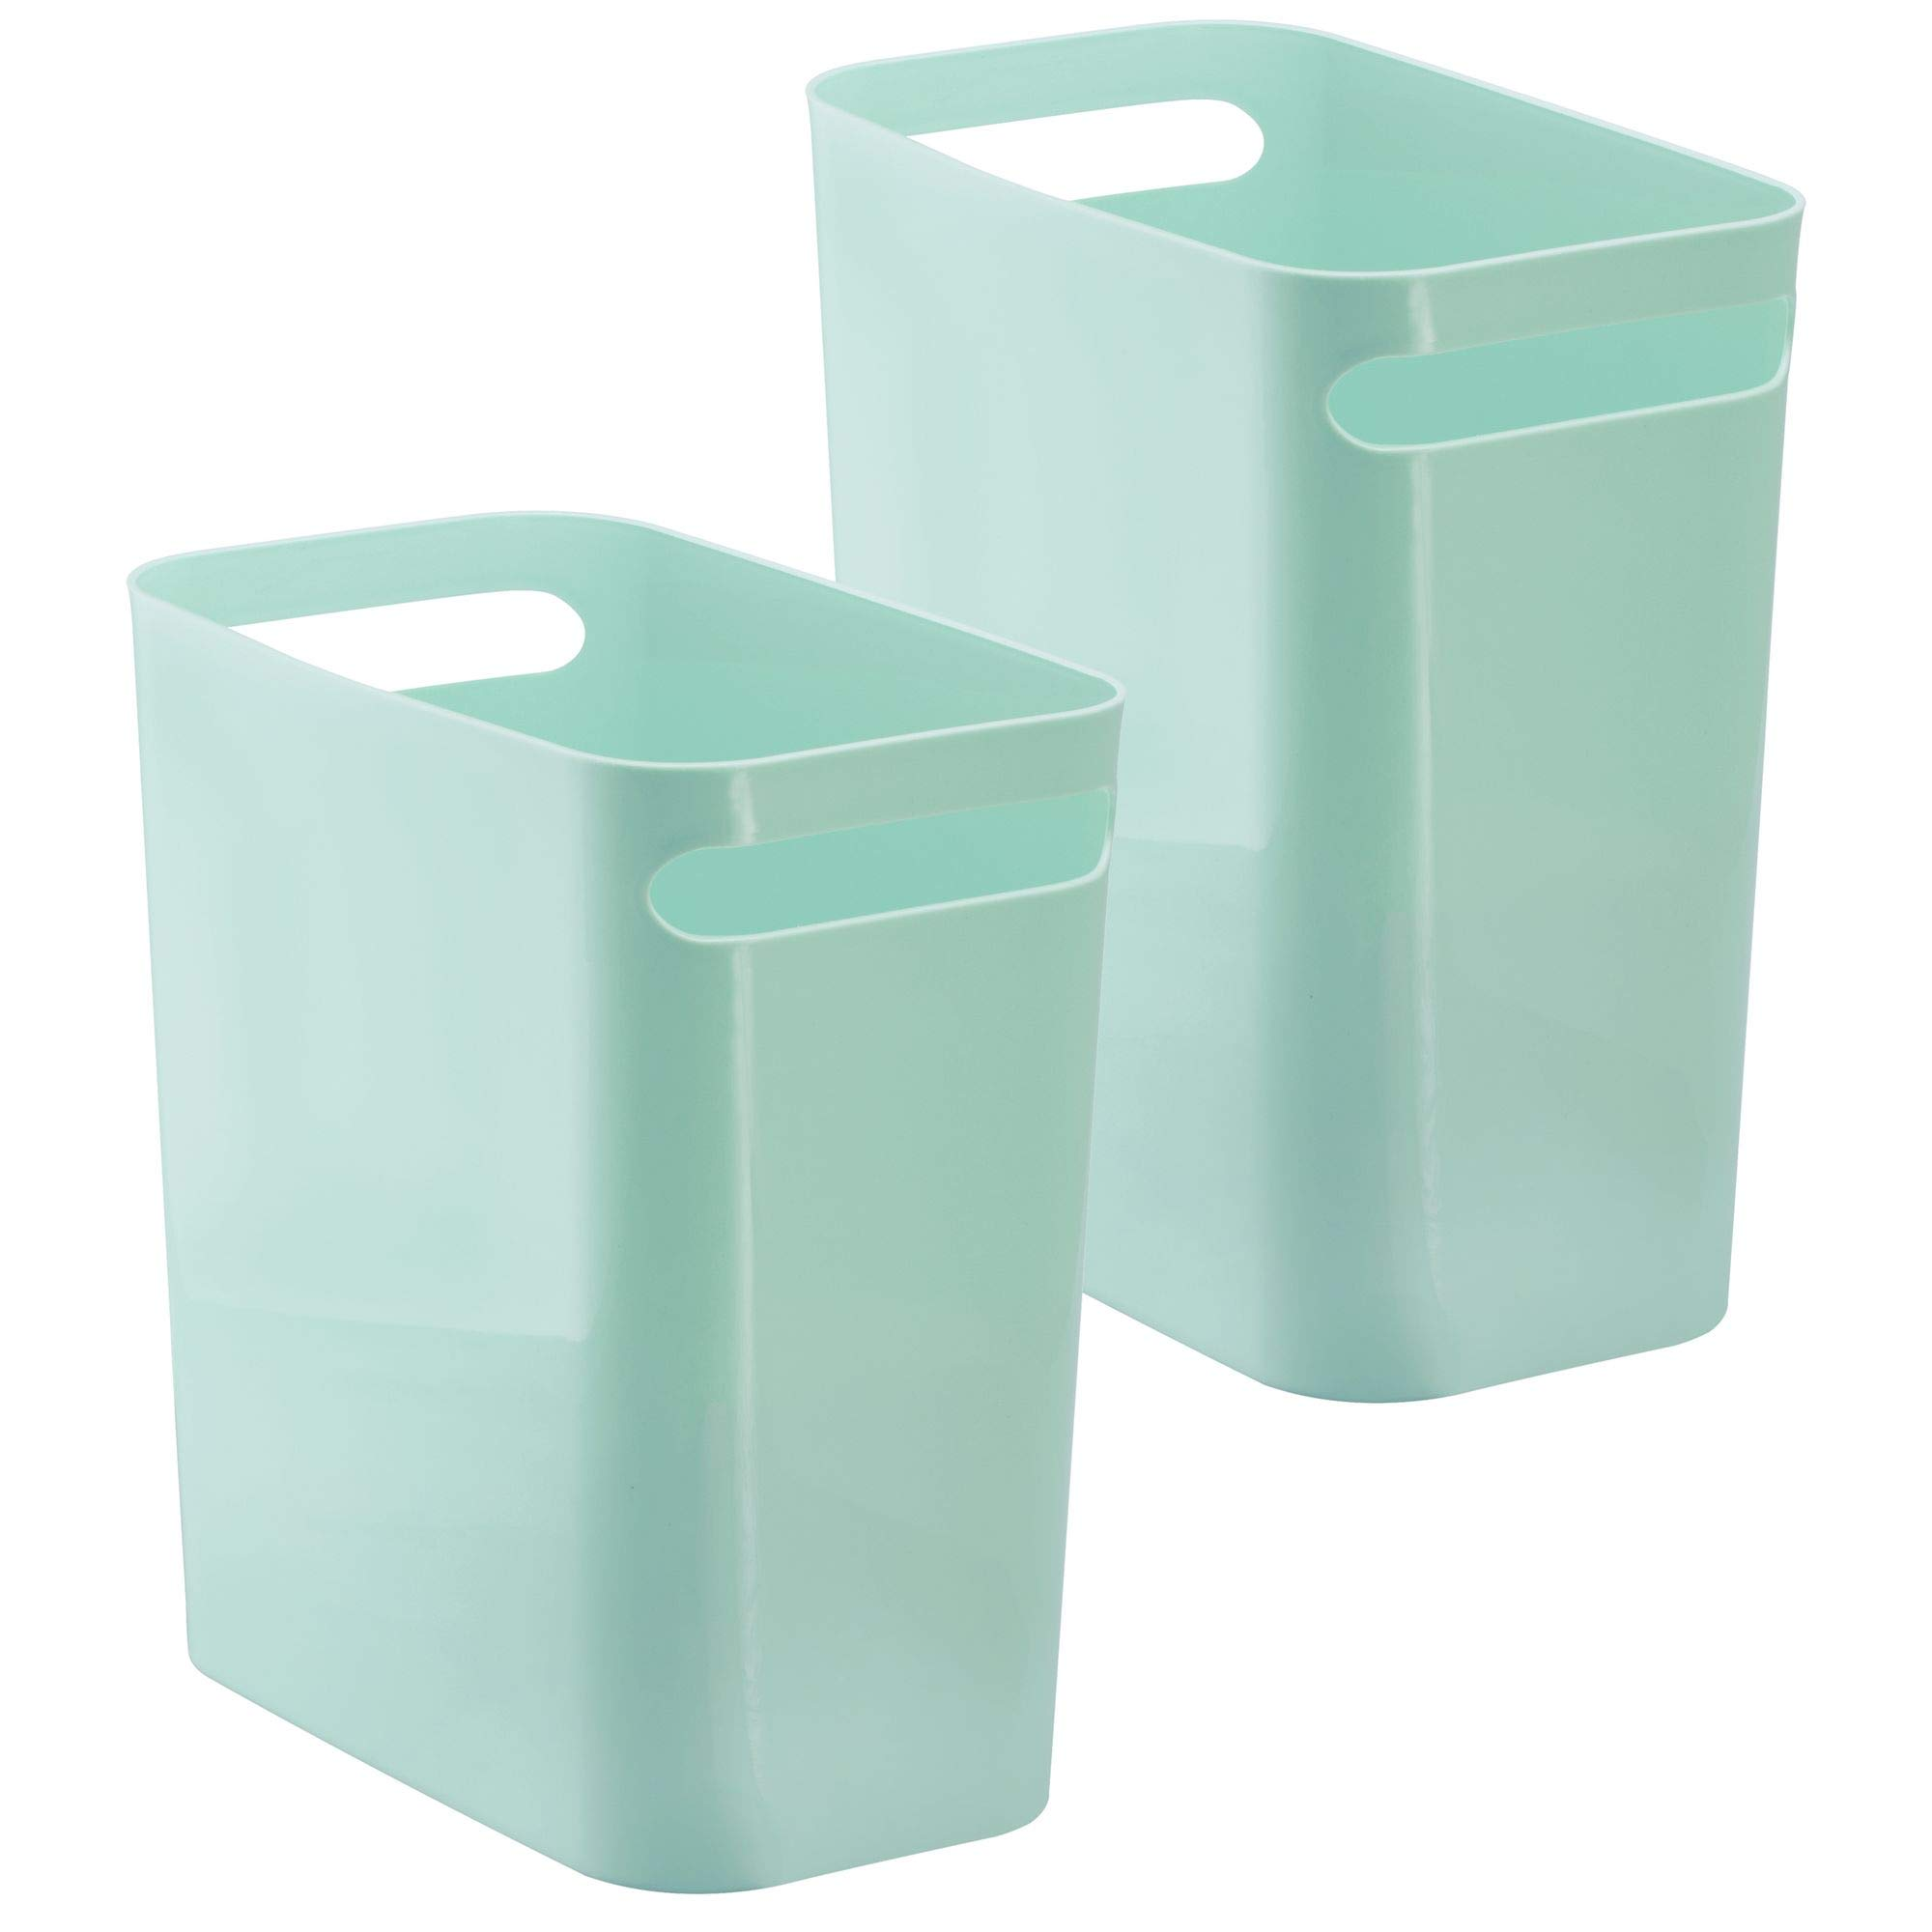 mDesign Slim Rectangular Small Trash Can Wastebasket, Garbage Container Bin with Handles for Bathrooms, Kitchens, Home Offices, Dorms, Kids Rooms � Pack of 2, 12 inch high, Plastic, Mint